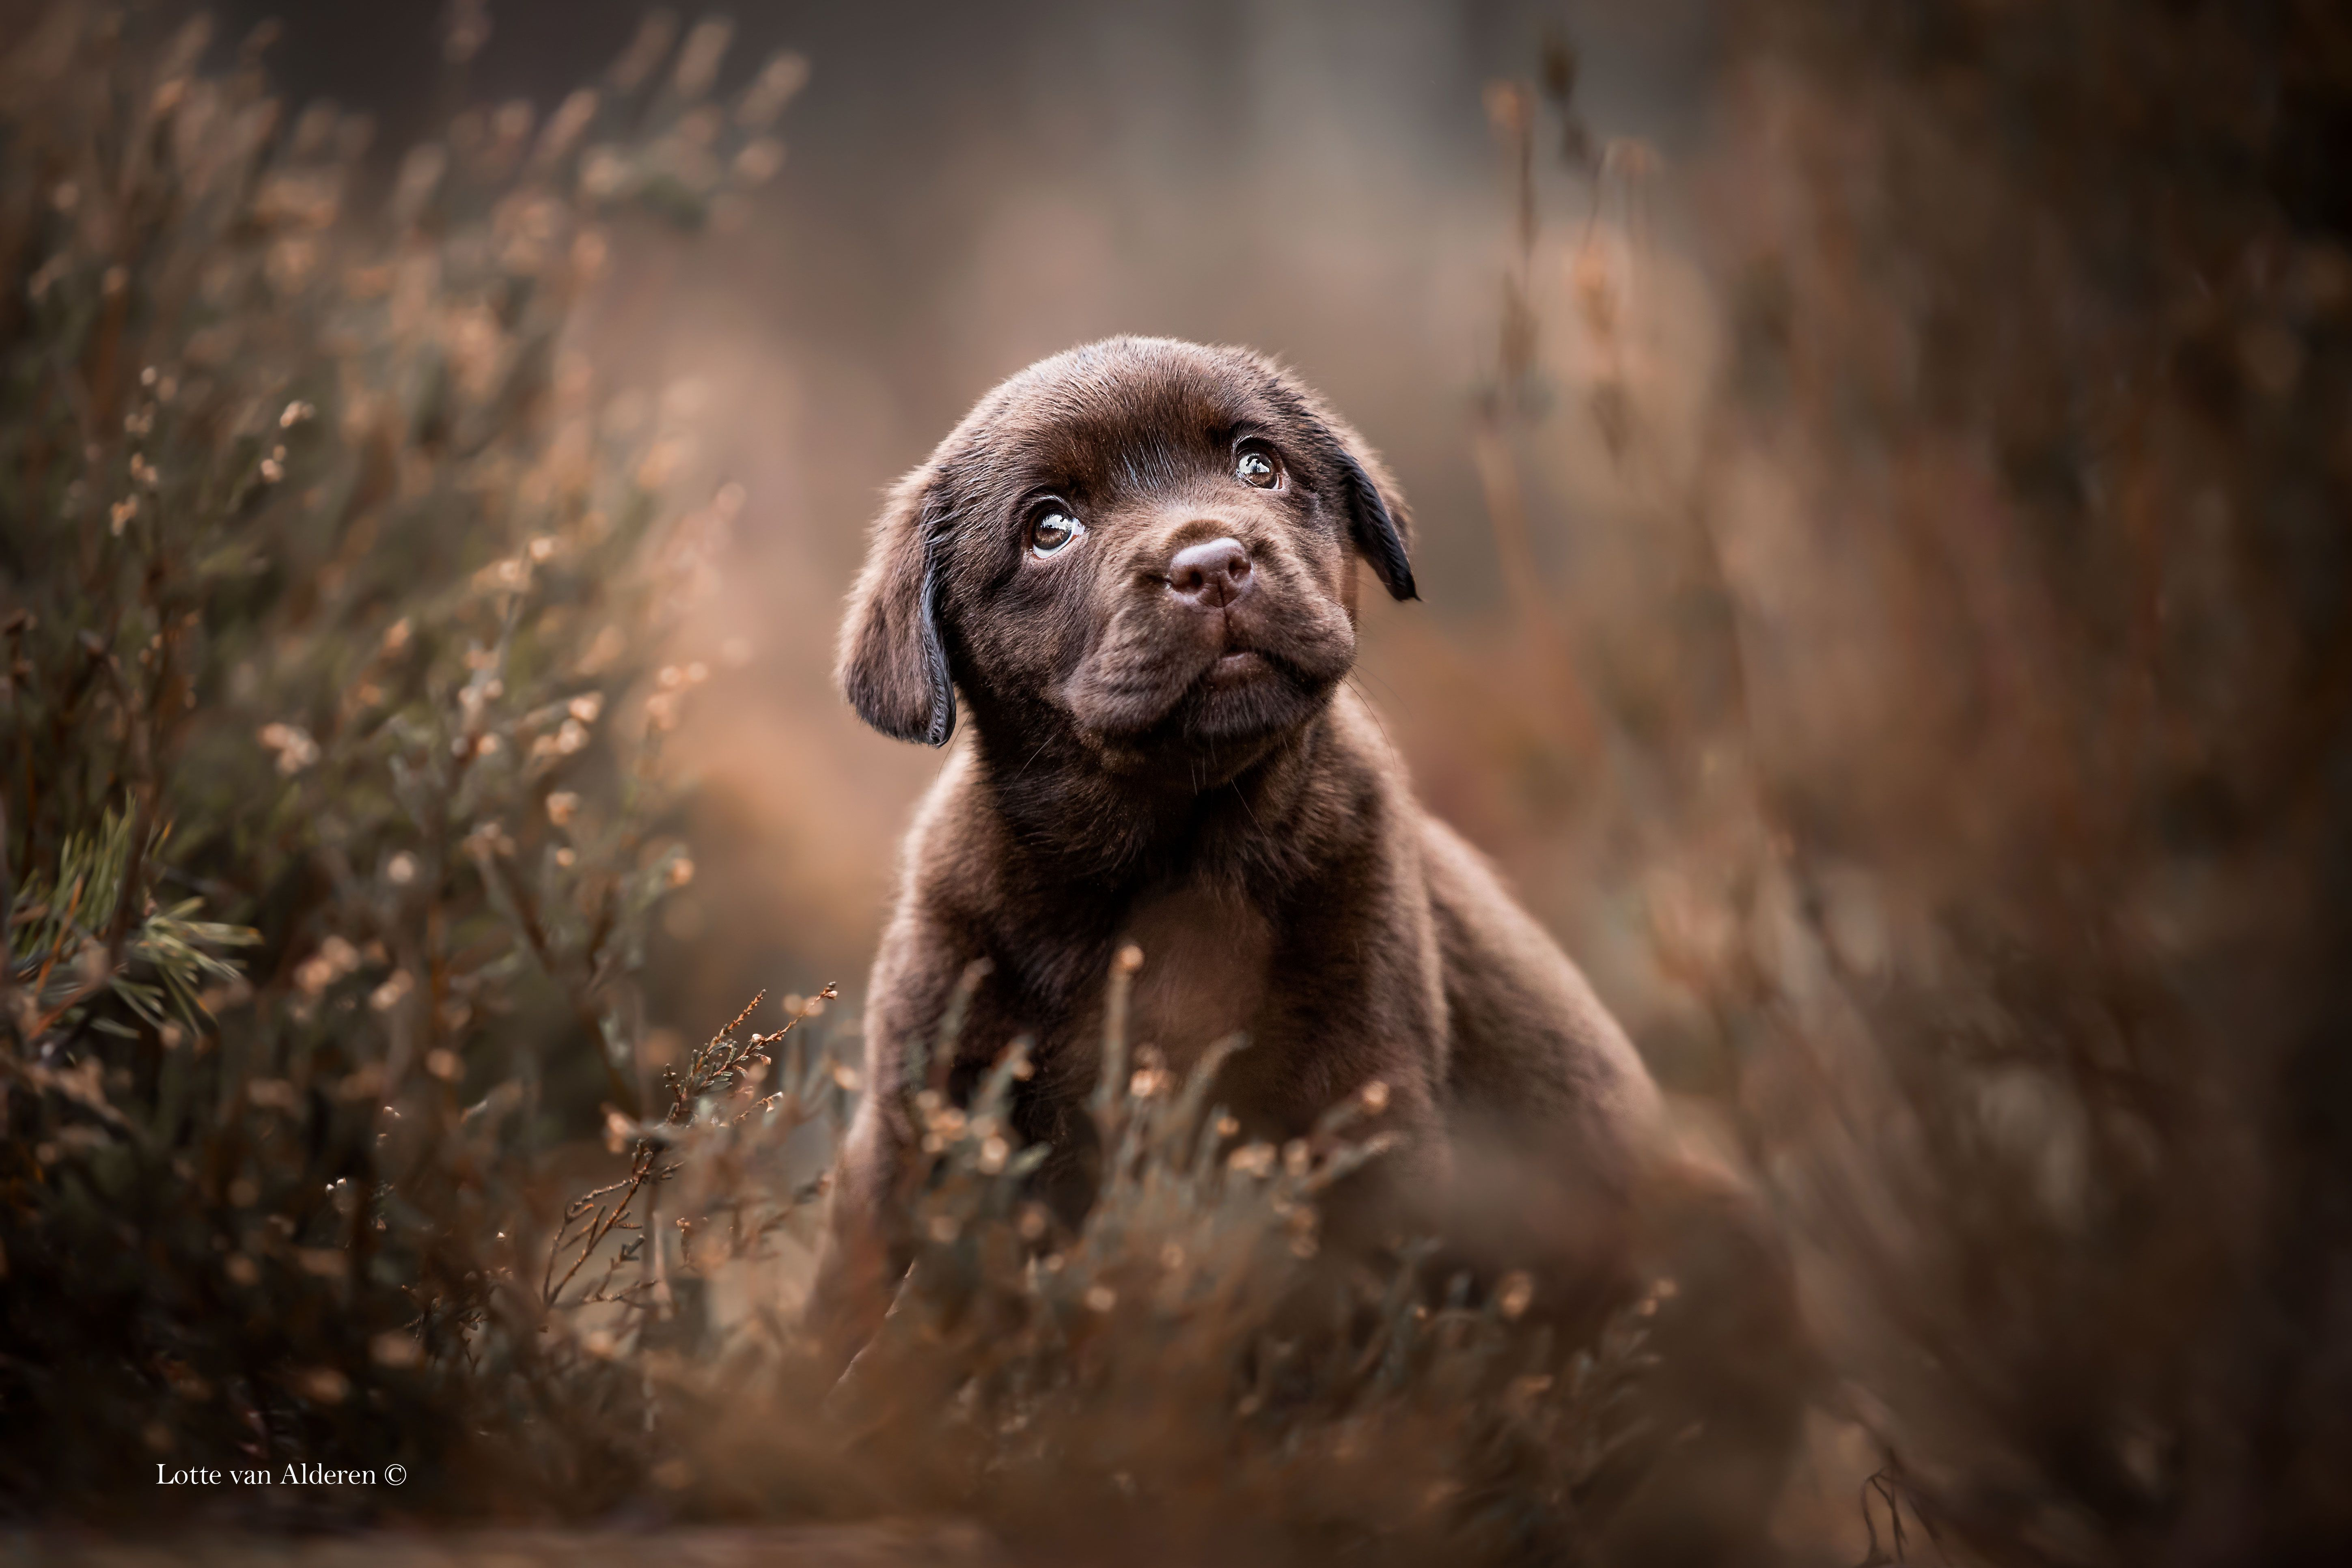 30 award-winning dog images from The Kennel Club's photography competition